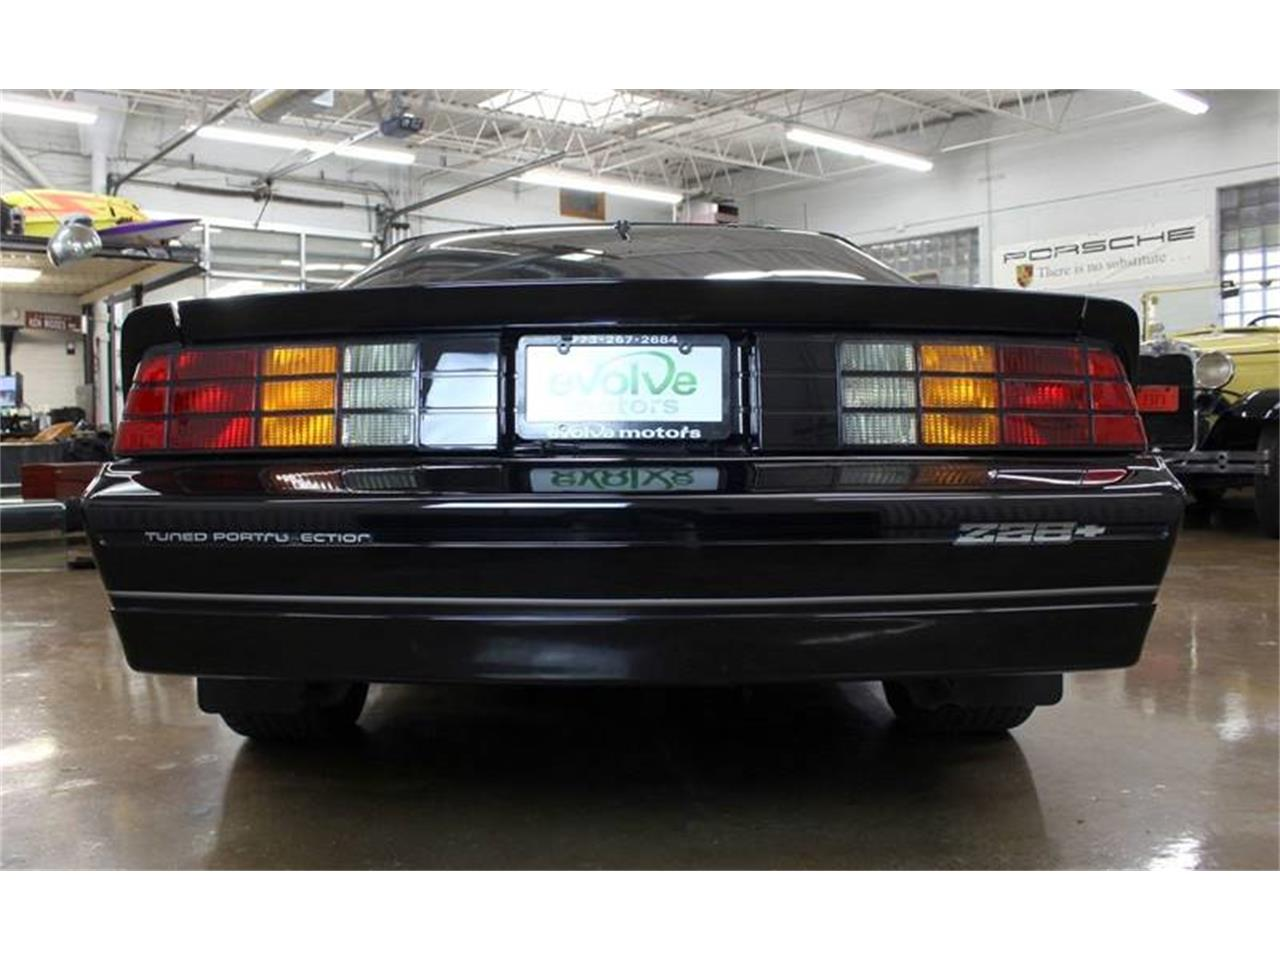 Large Picture of '85 Camaro located in Illinois - $18,900.00 Offered by Evolve Motors - MB2C